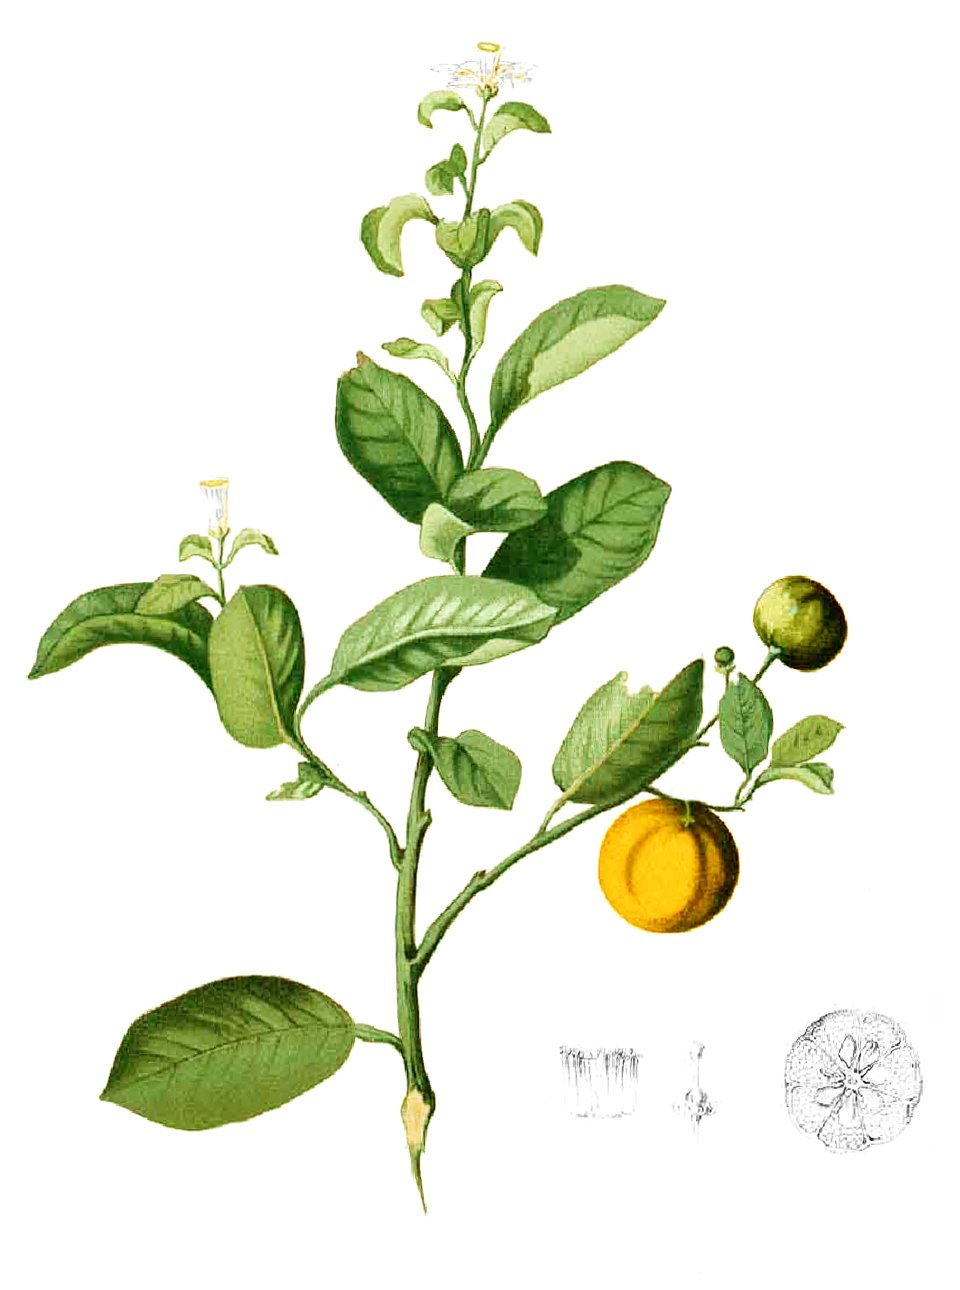 Citrus madurensis Blanco1.185-cropped.jpg